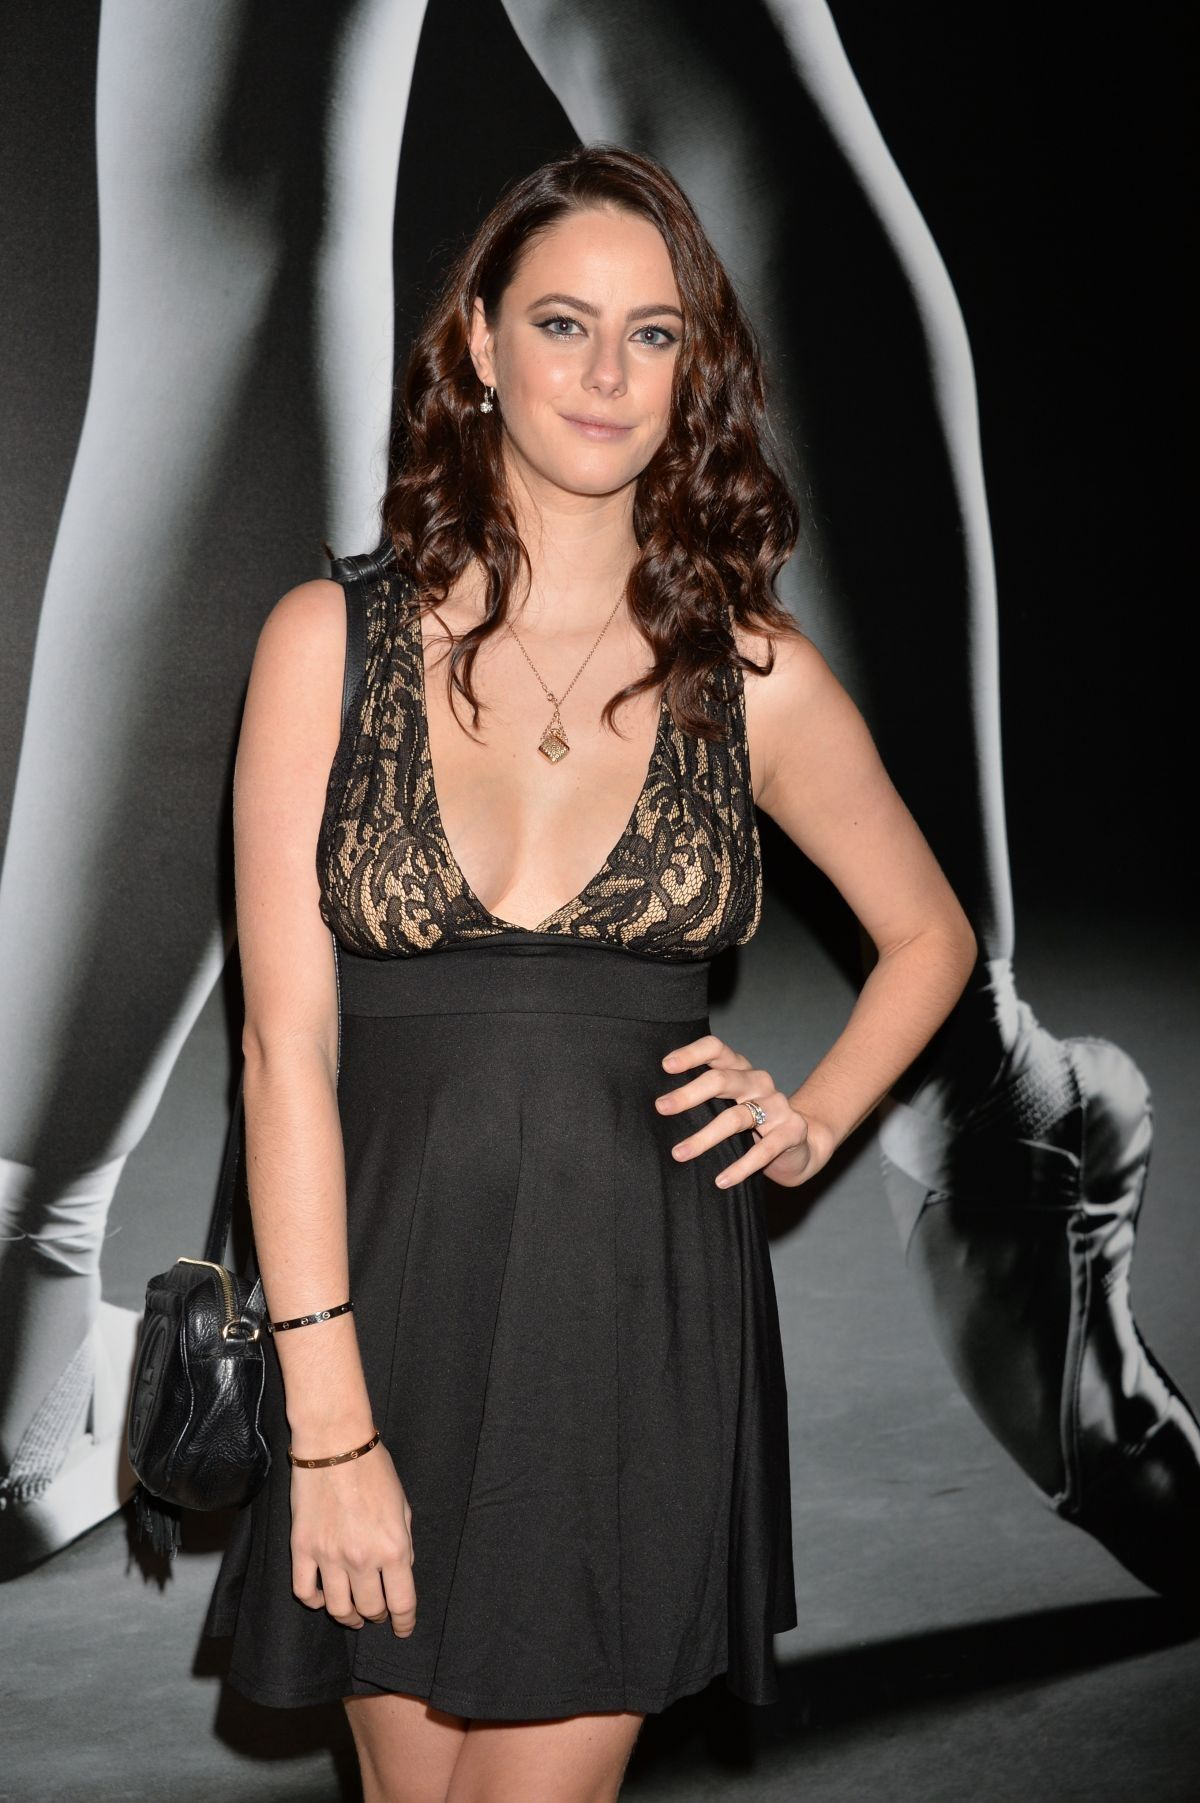 Fappening Kaya Scodelario naked (68 photos), Sexy, Is a cute, Boobs, underwear 2015